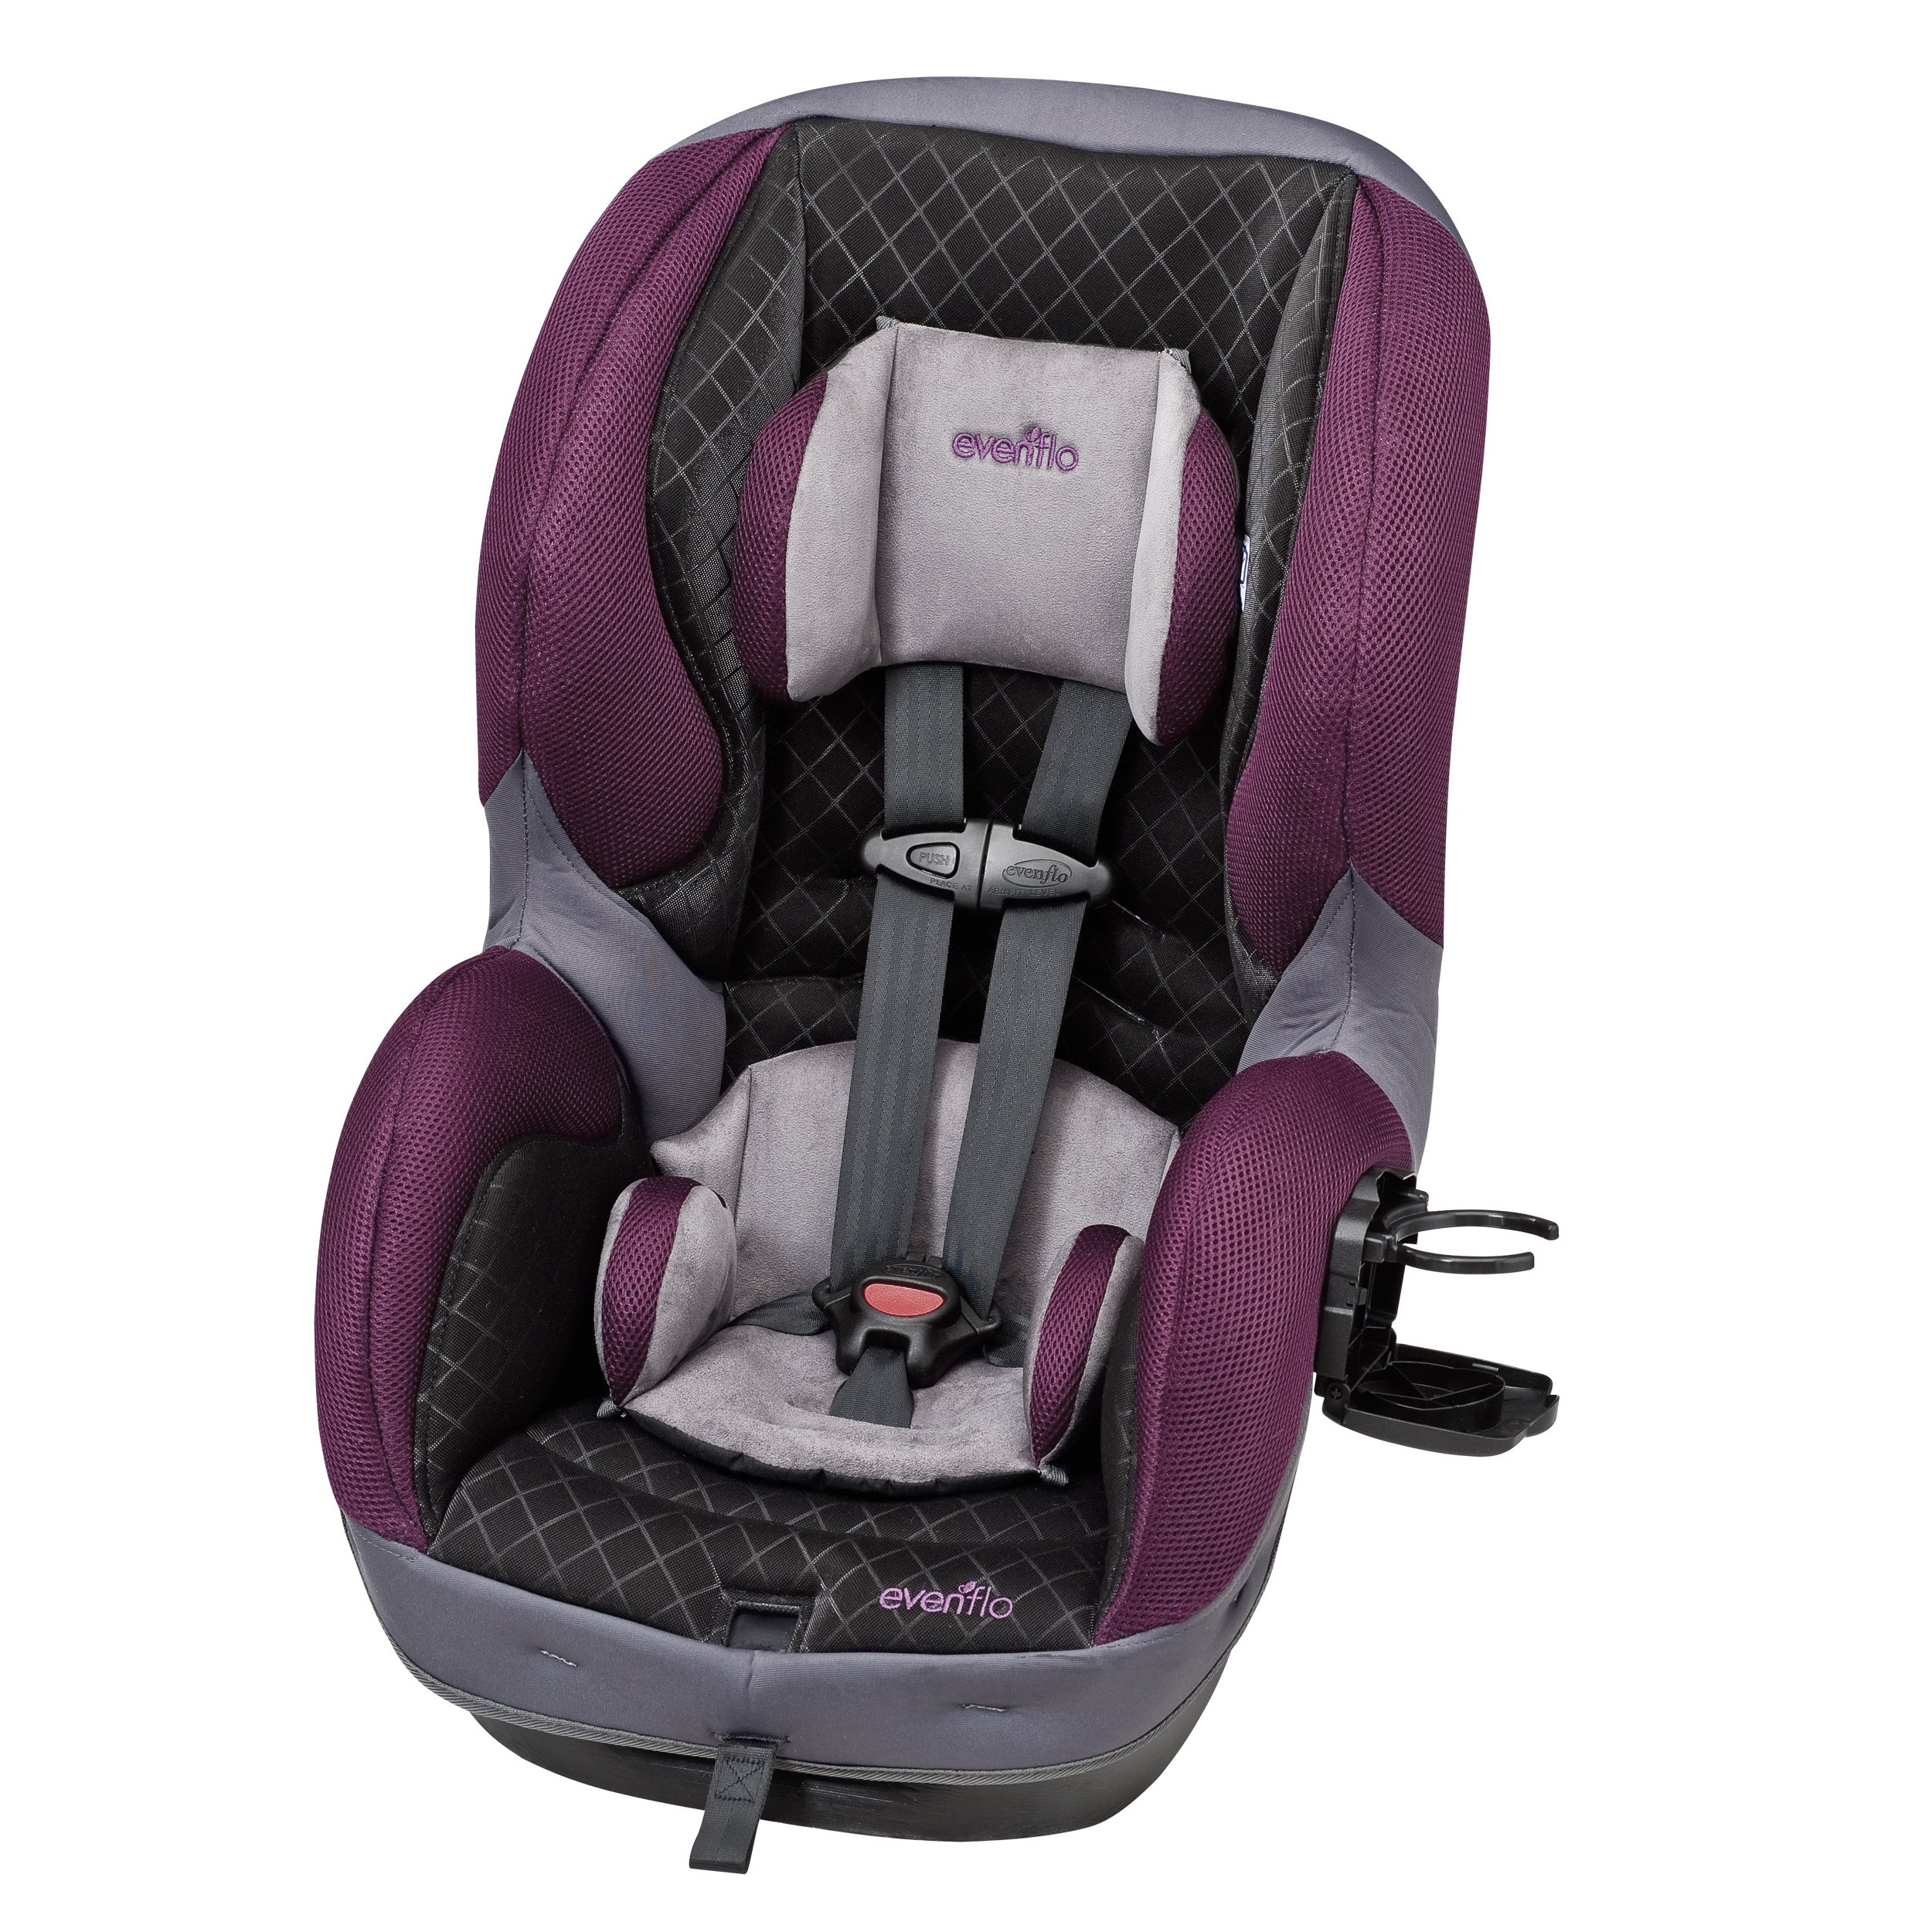 Amazon.com : Evenflo SureRide DLX Convertible Car Seat